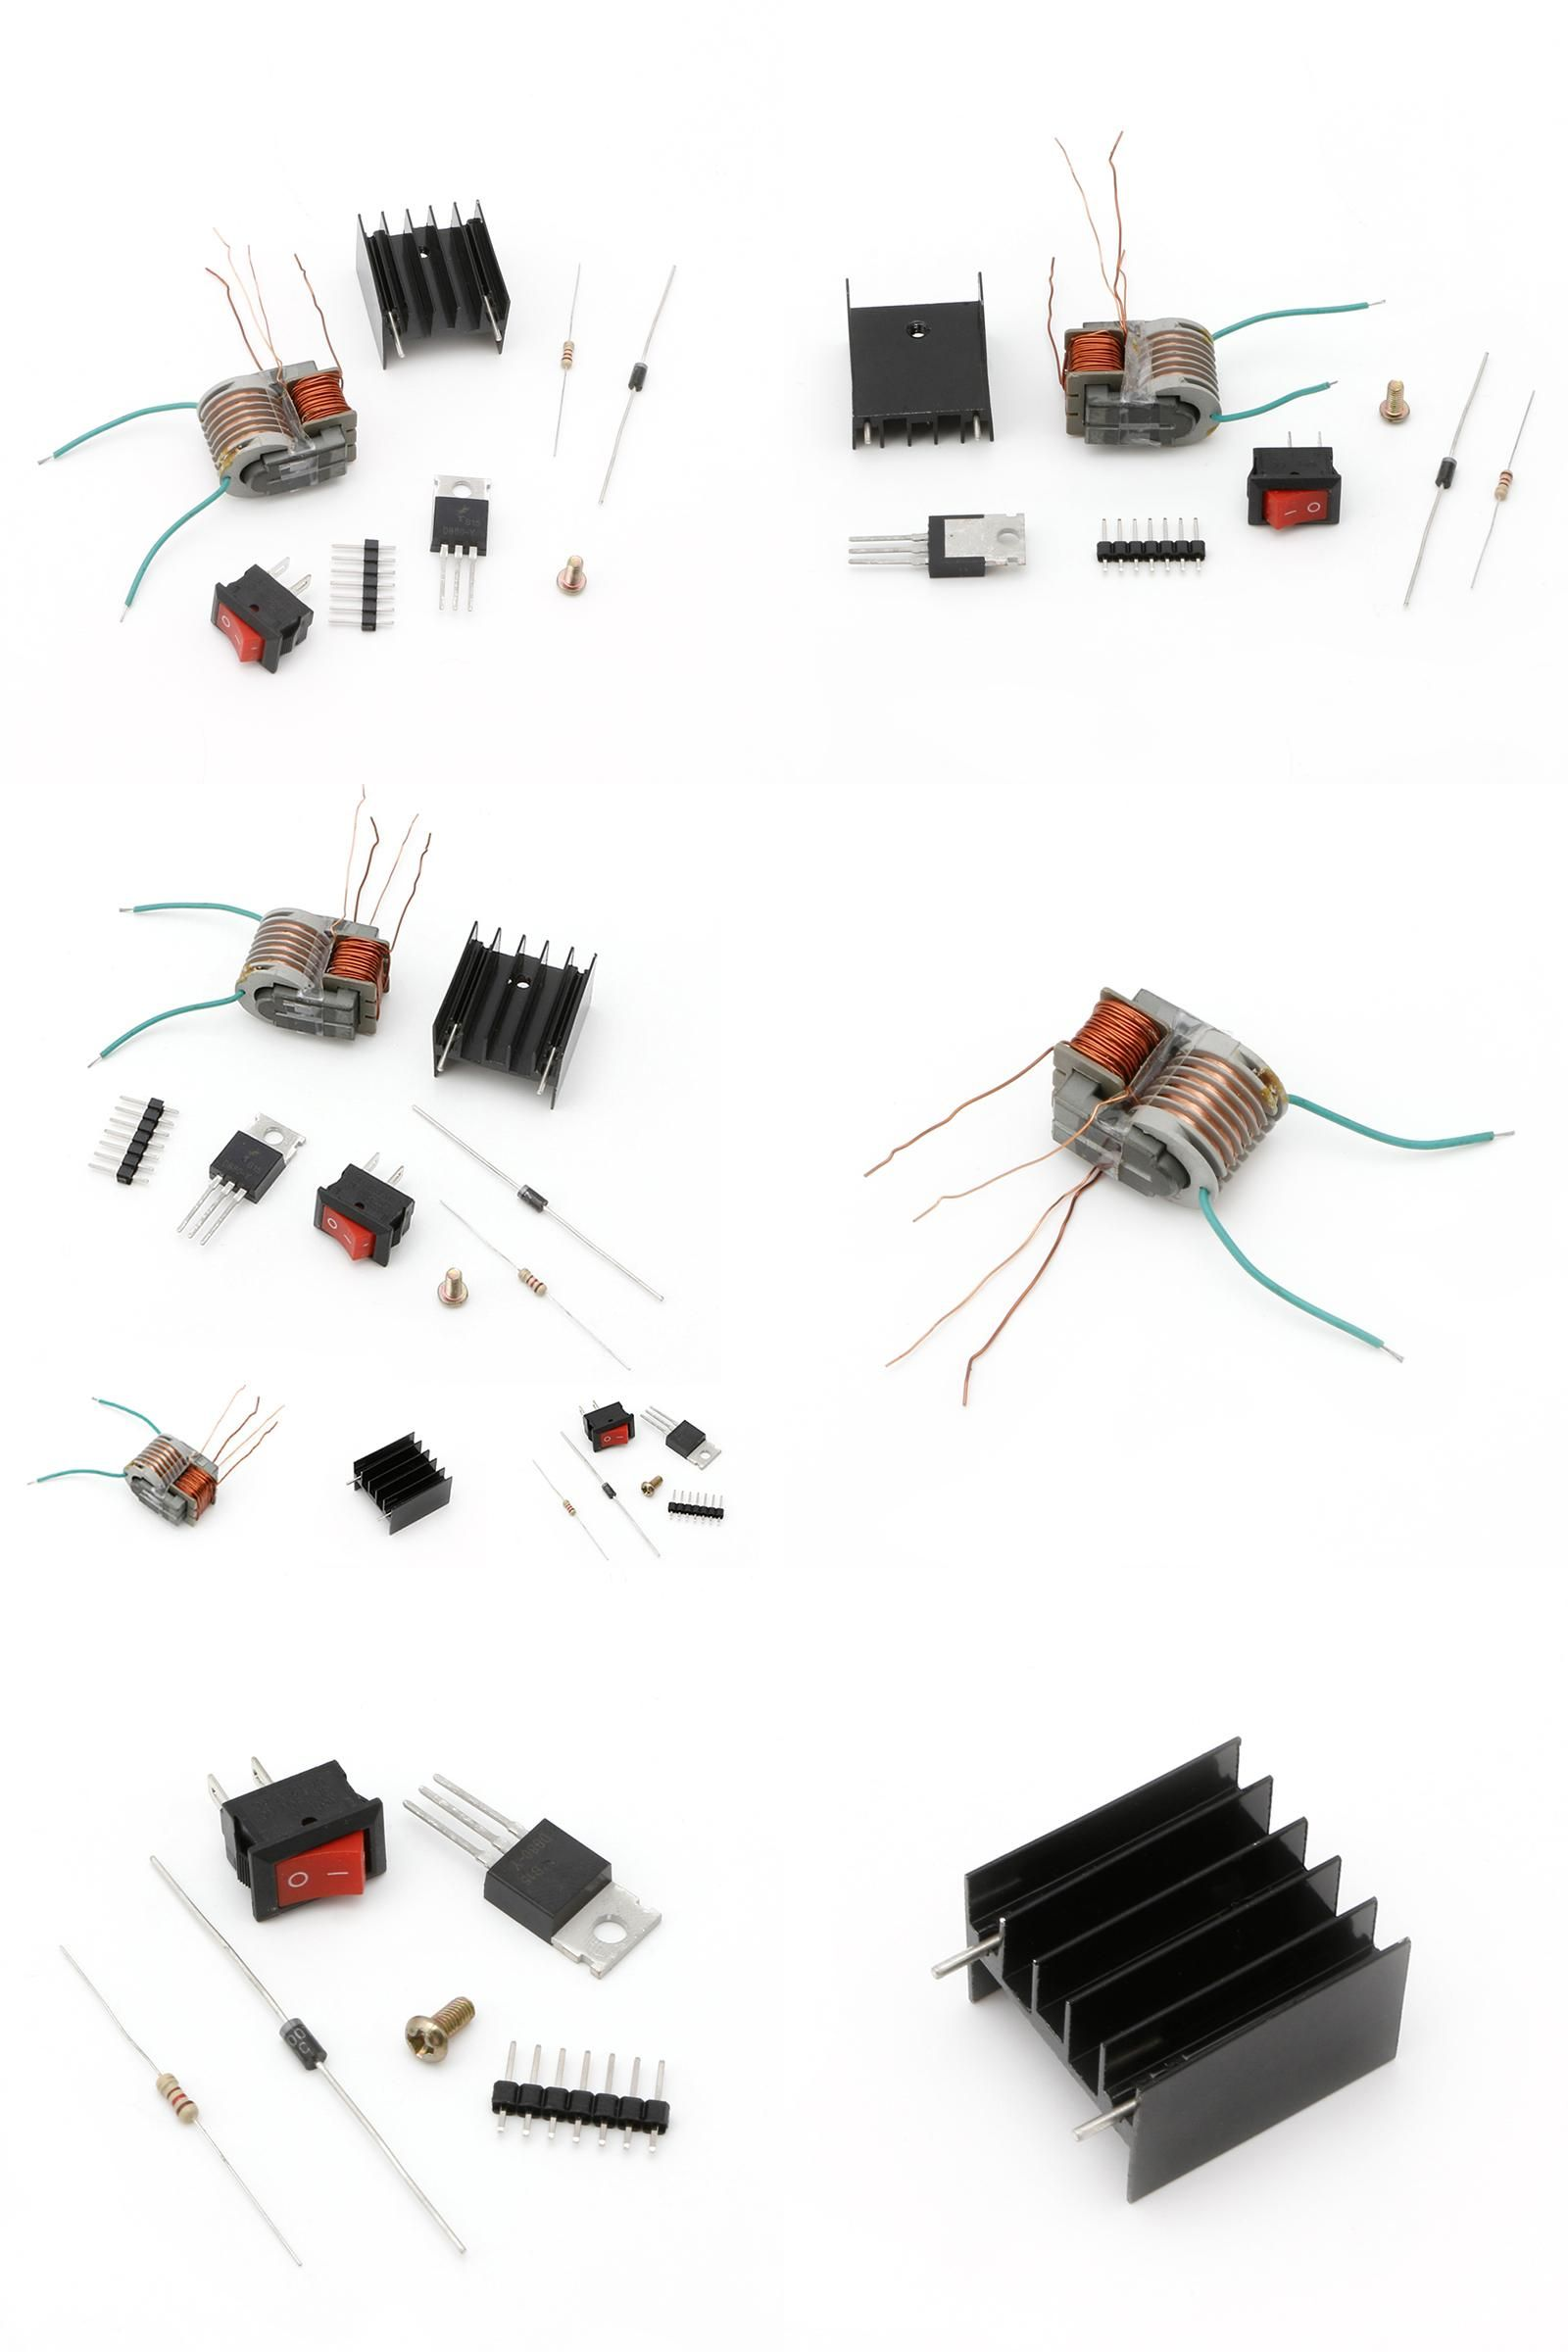 DC High voltage Generator Inverter Electric Ignitor DIY Kit for